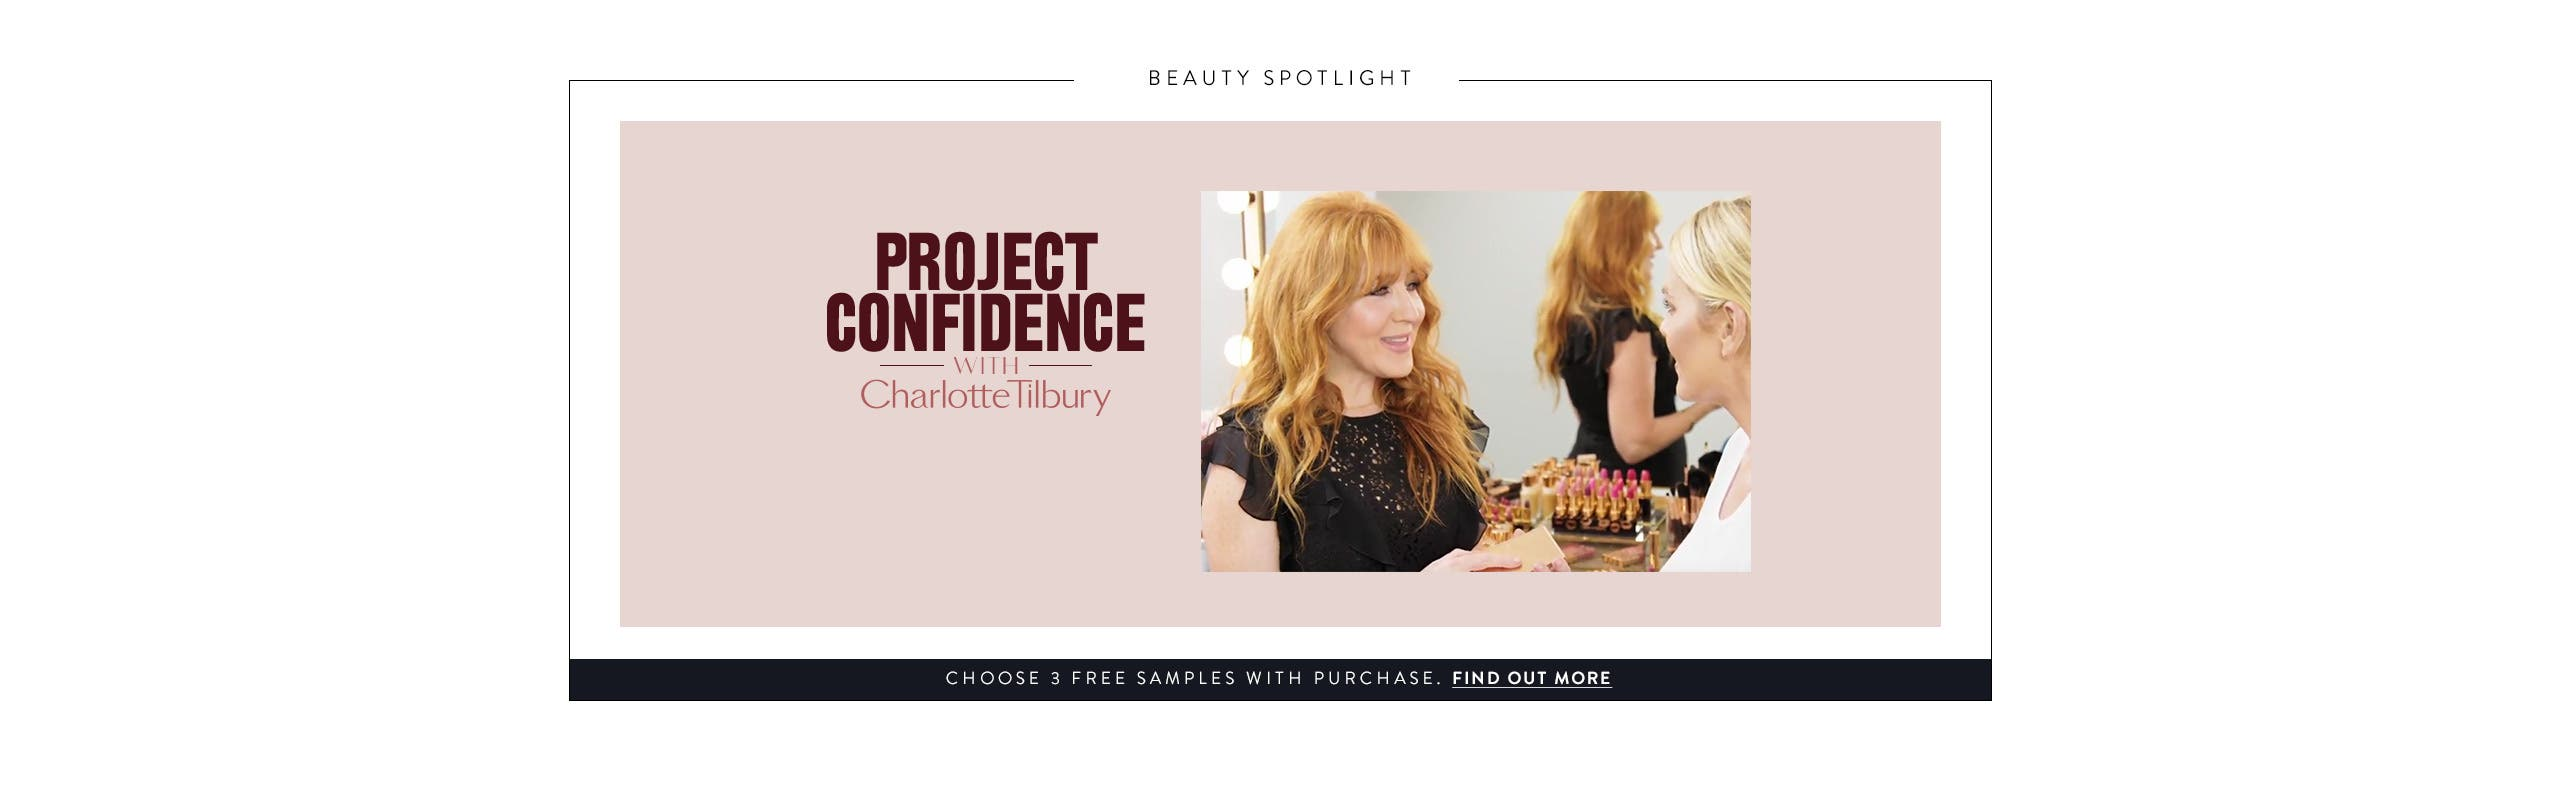 Project Confidence with Charlotte Tilbury. Choose 3 free samples with purchase.